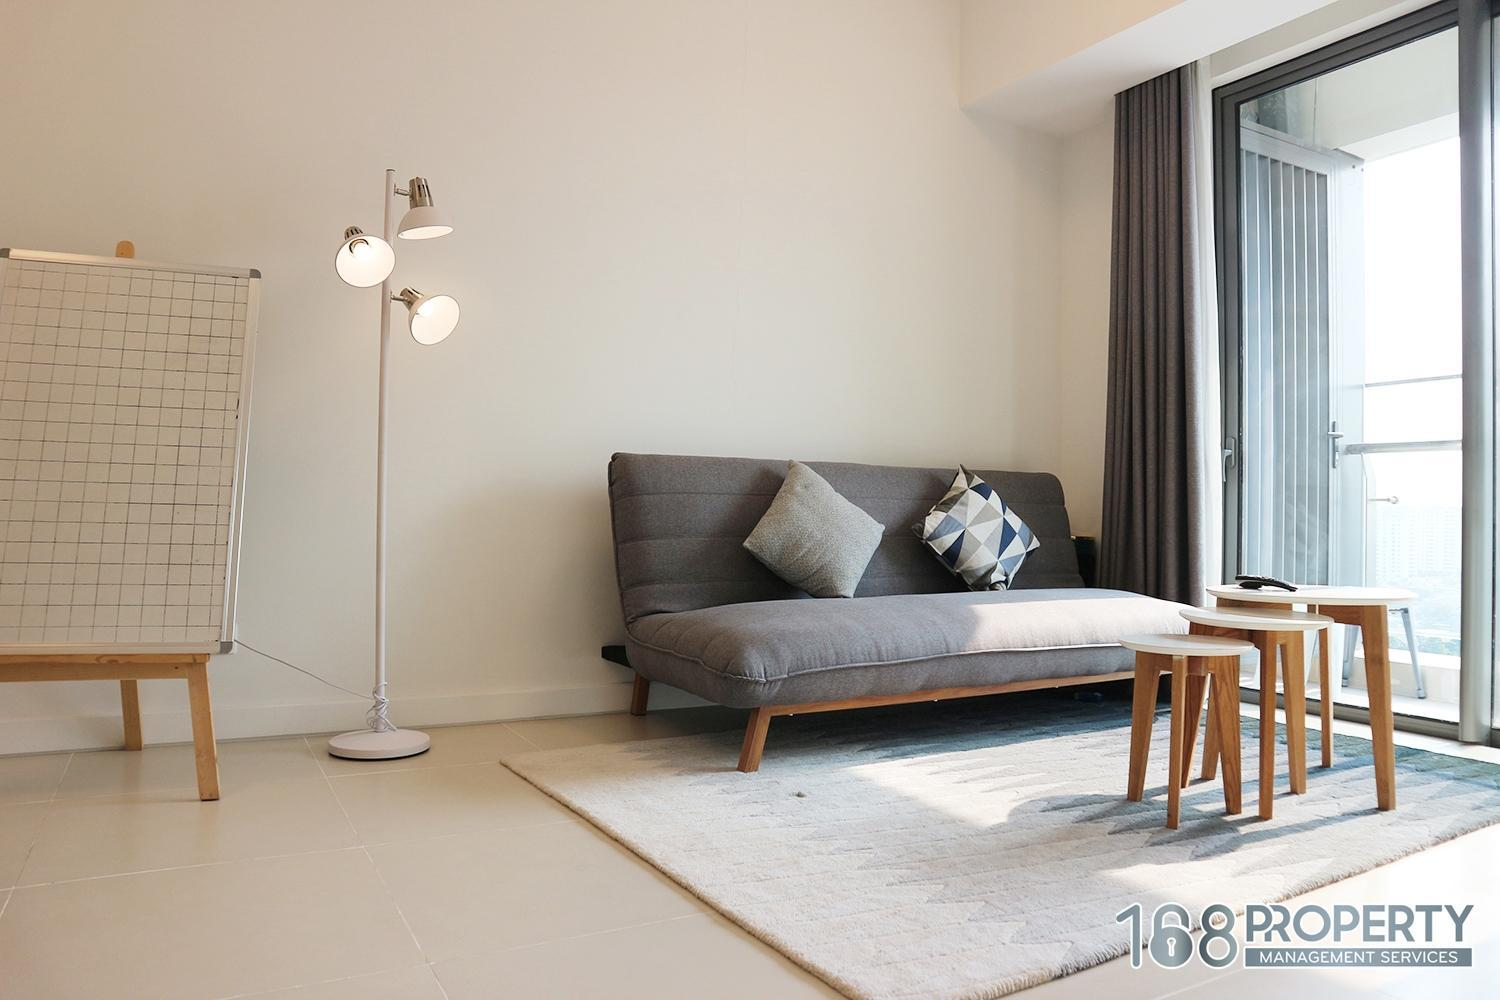 168PROPERTY  BEAUTIFUL FURNISHED 1BR APARTMENT